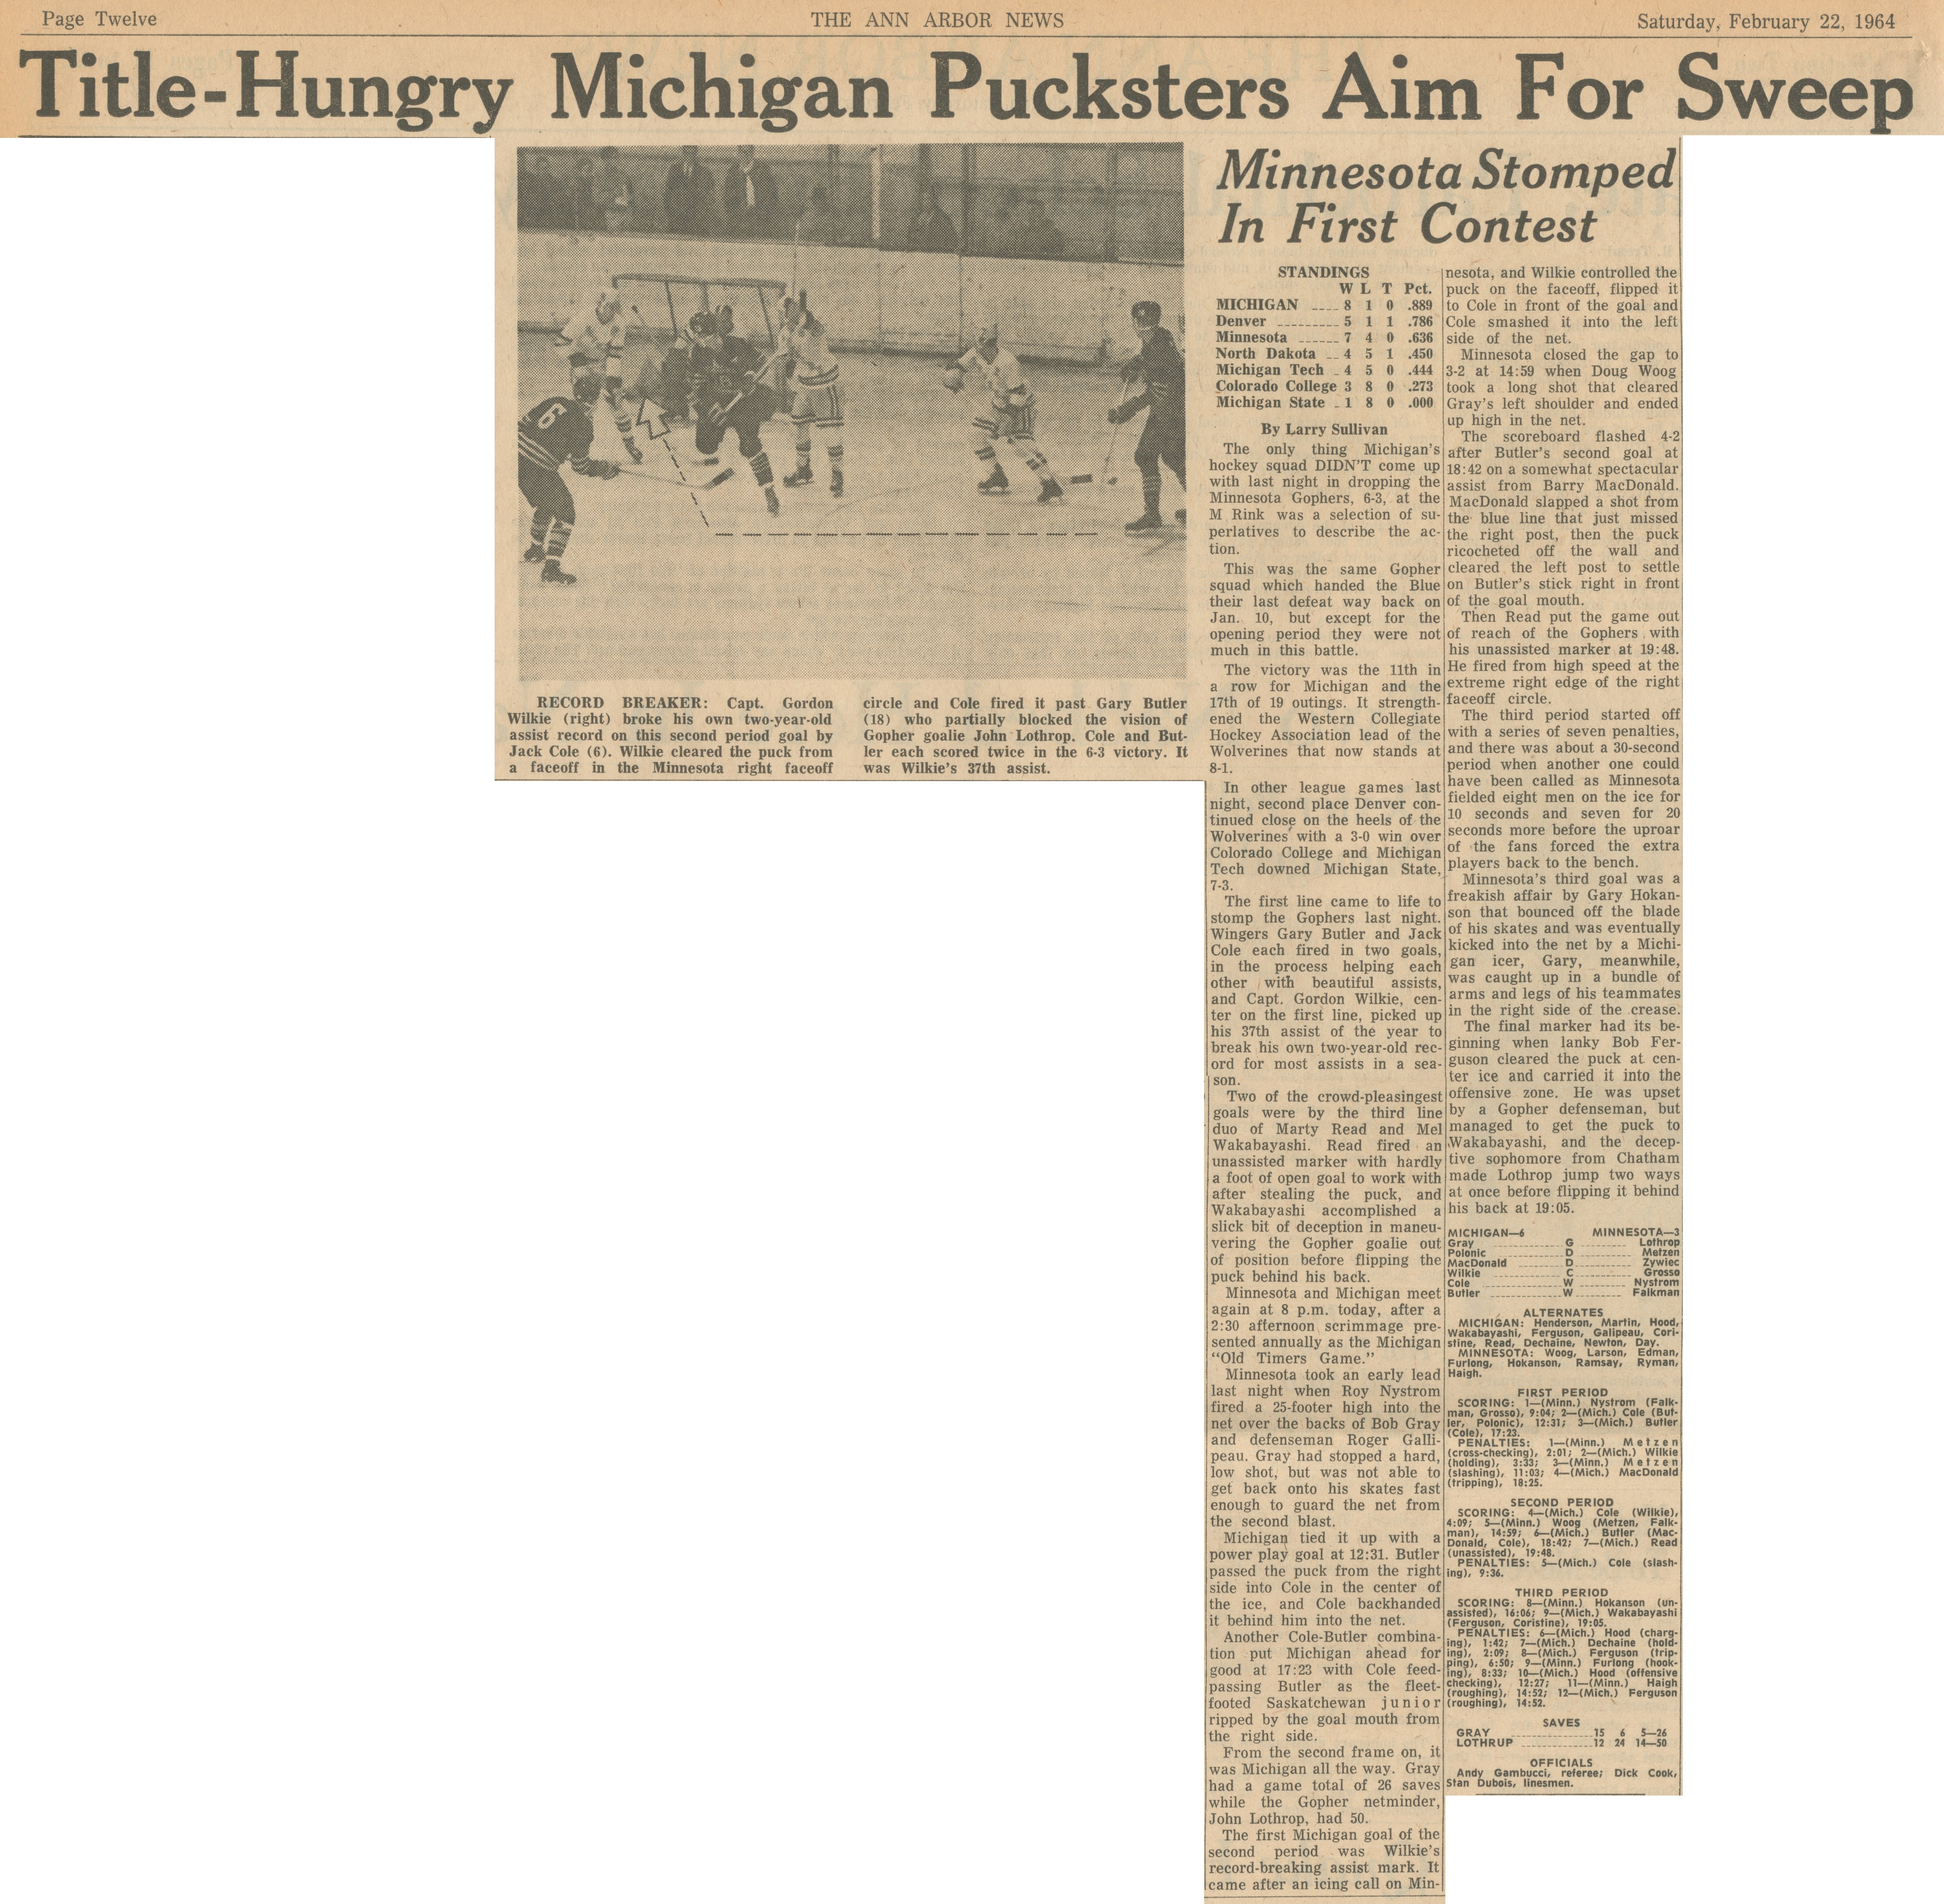 Title-Hungry Michigan Pucksters Aim For Sweep image